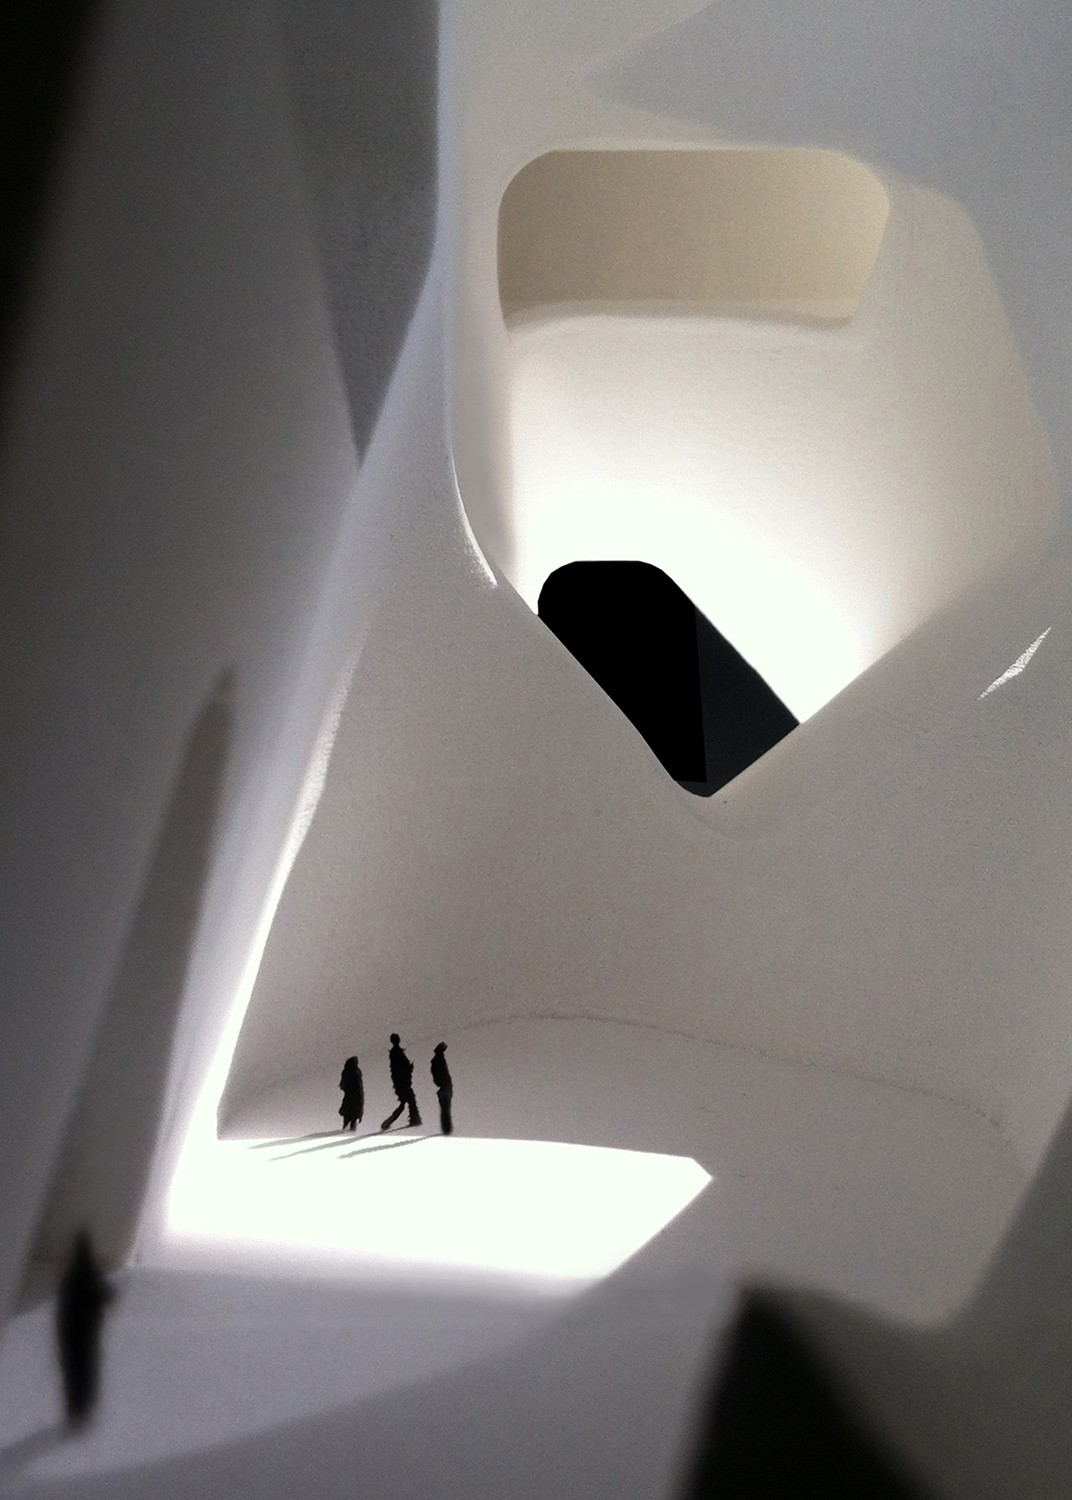 https://s3.us-east-2.amazonaws.com/steven-holl/uploads/projects/project-images/StevenHollArchitects_Tianjin_Interior1_WV.jpg